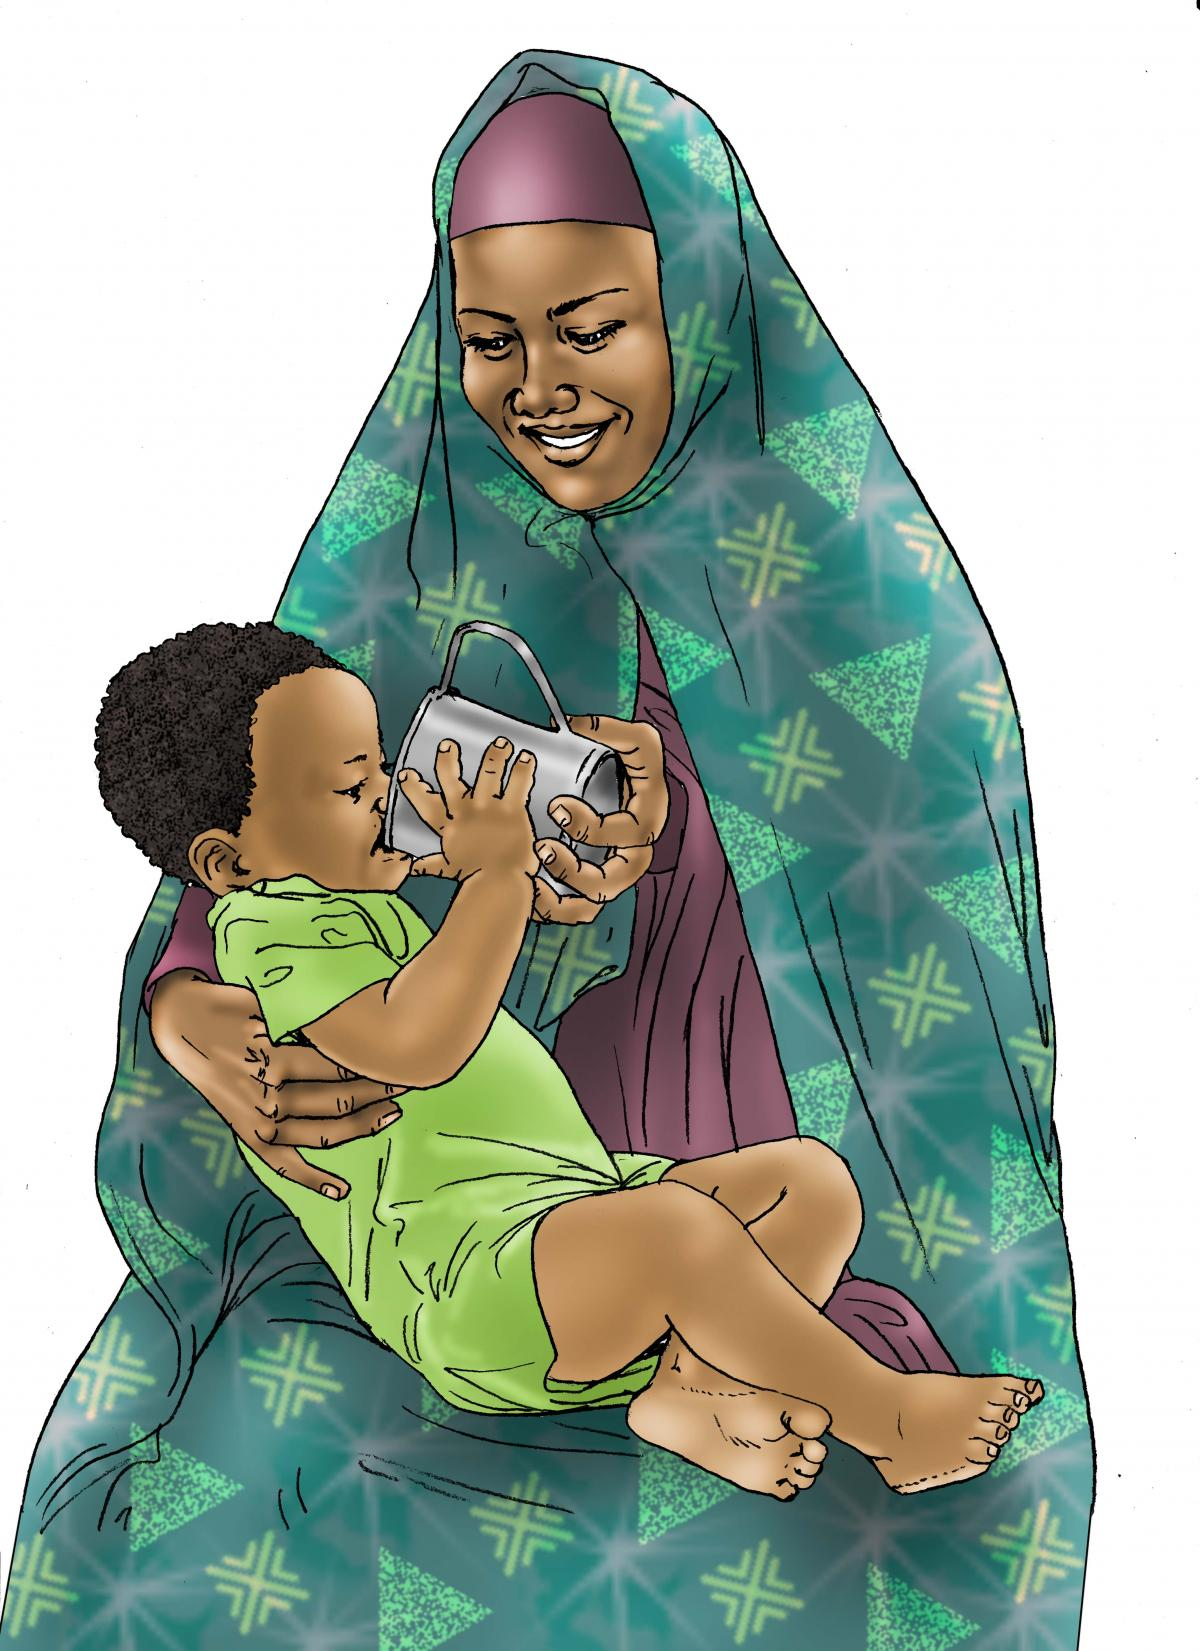 Sick baby health care - Mother giving child ORS - 02B - Kenya Dadaab